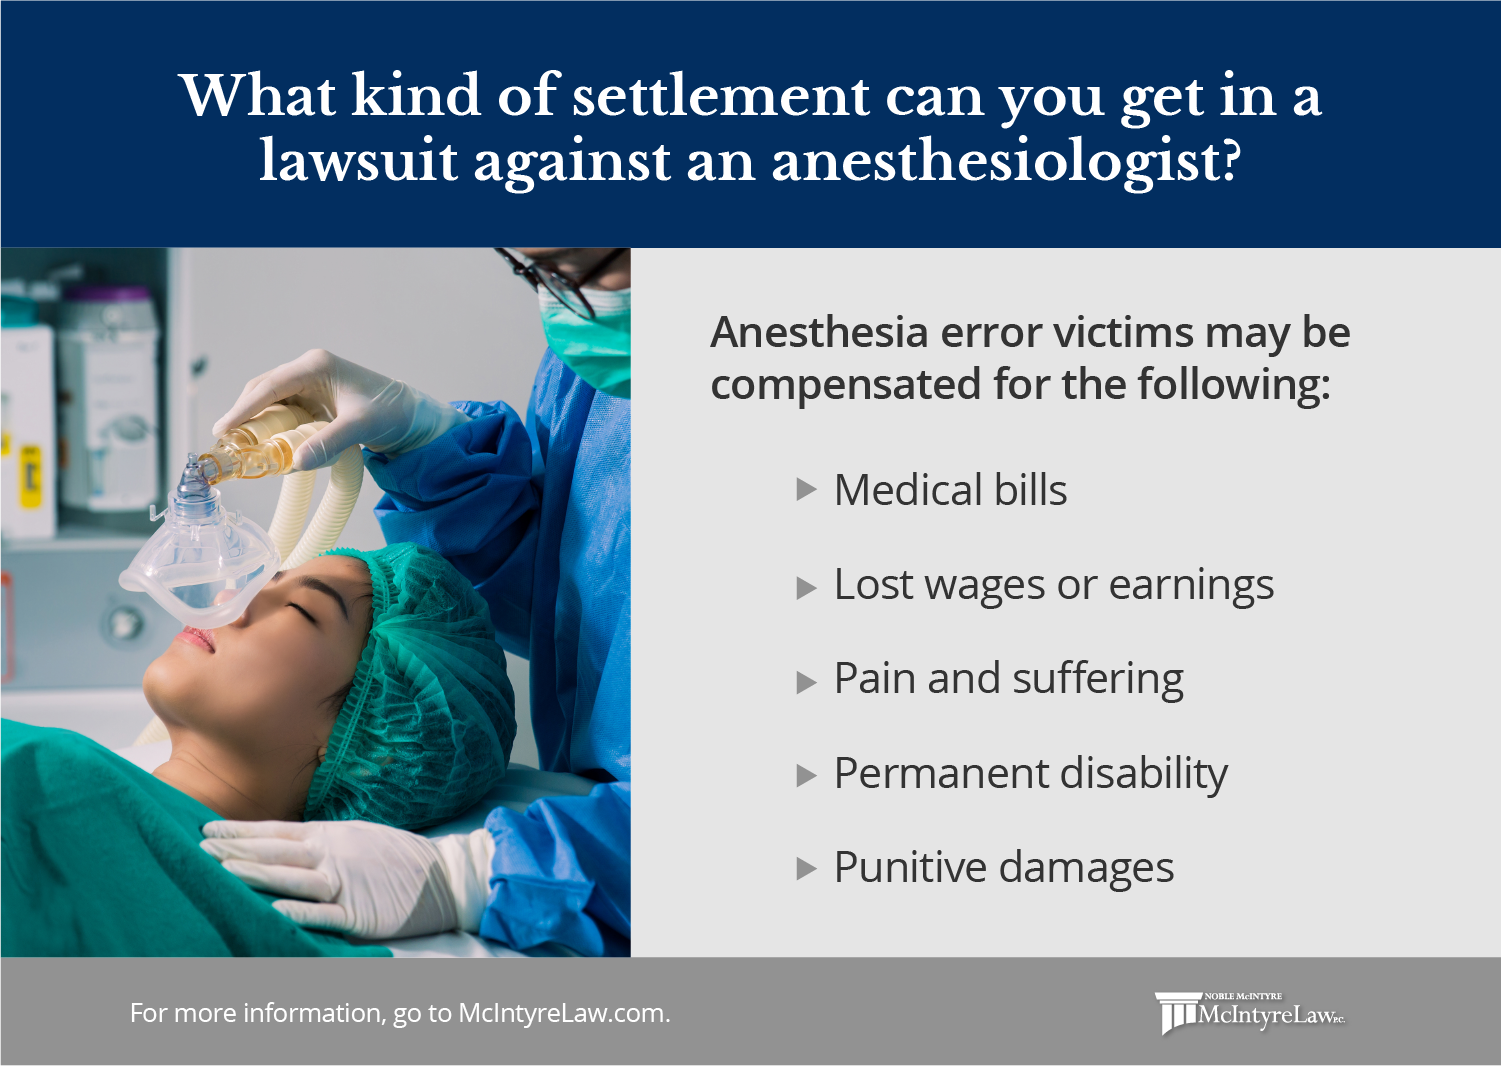 what kind of compensation can you get in a lawsuit against an anesthesiologist